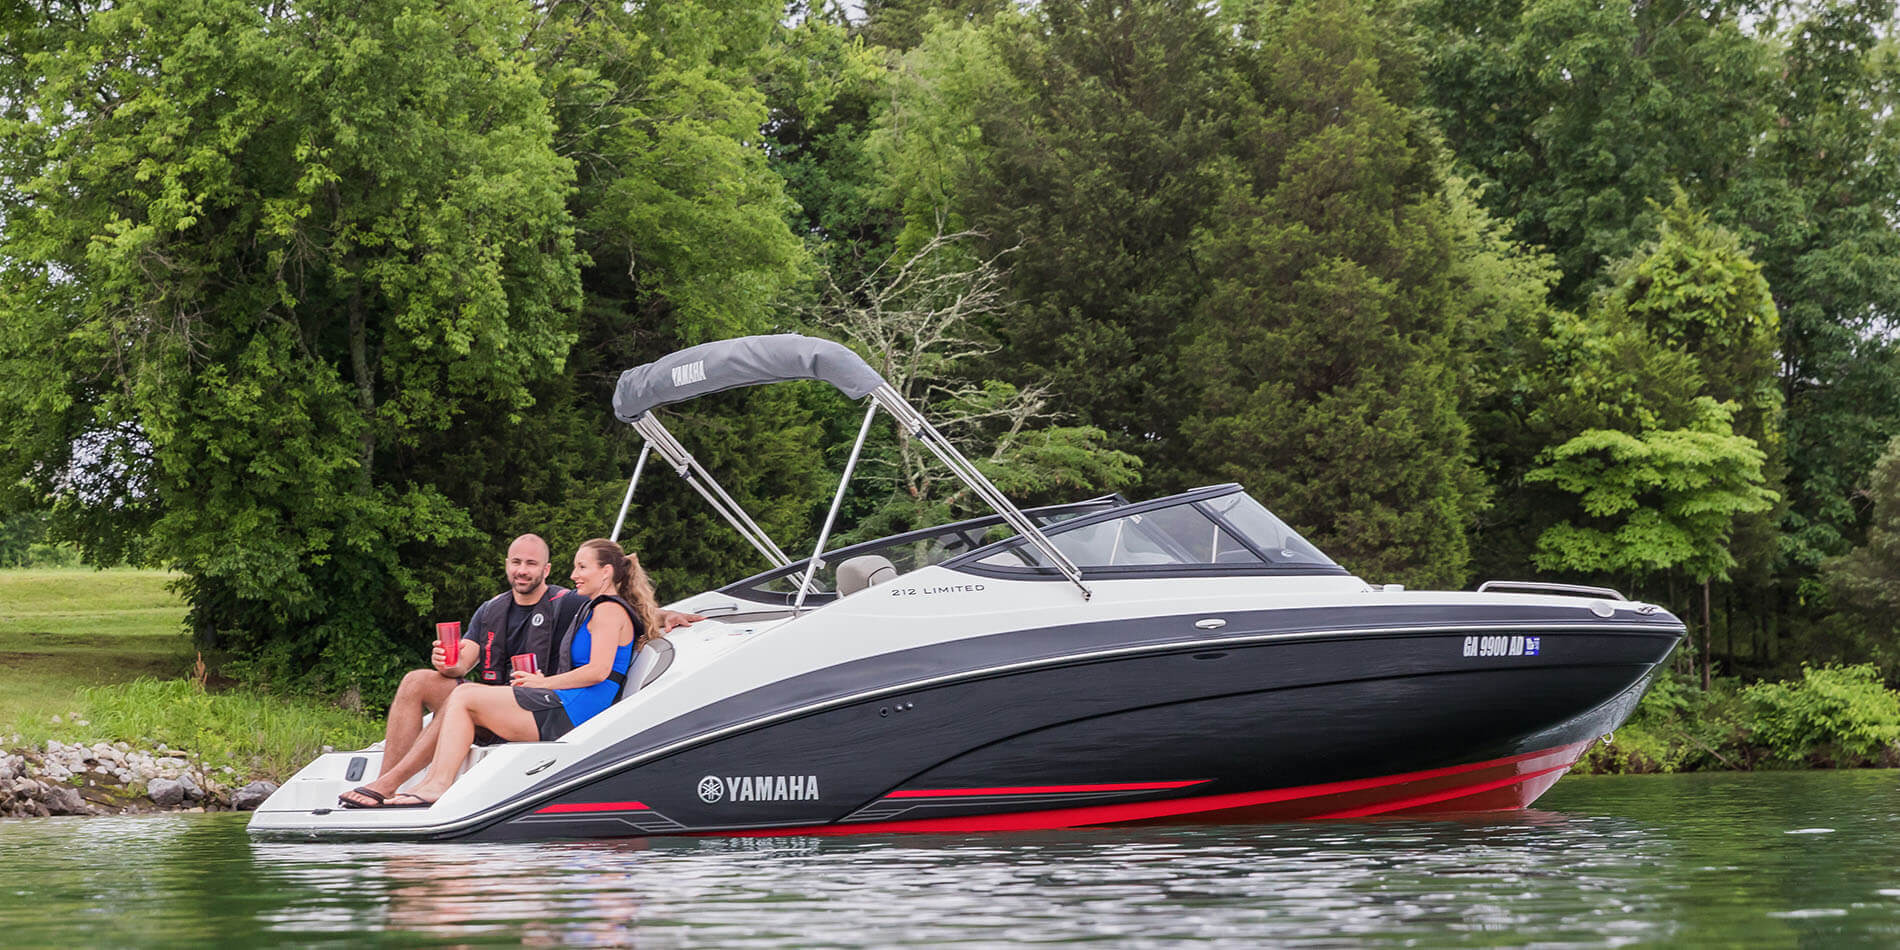 Yamaha boats 212 limited 2018 red black swim platform for 2018 yamaha jet boat